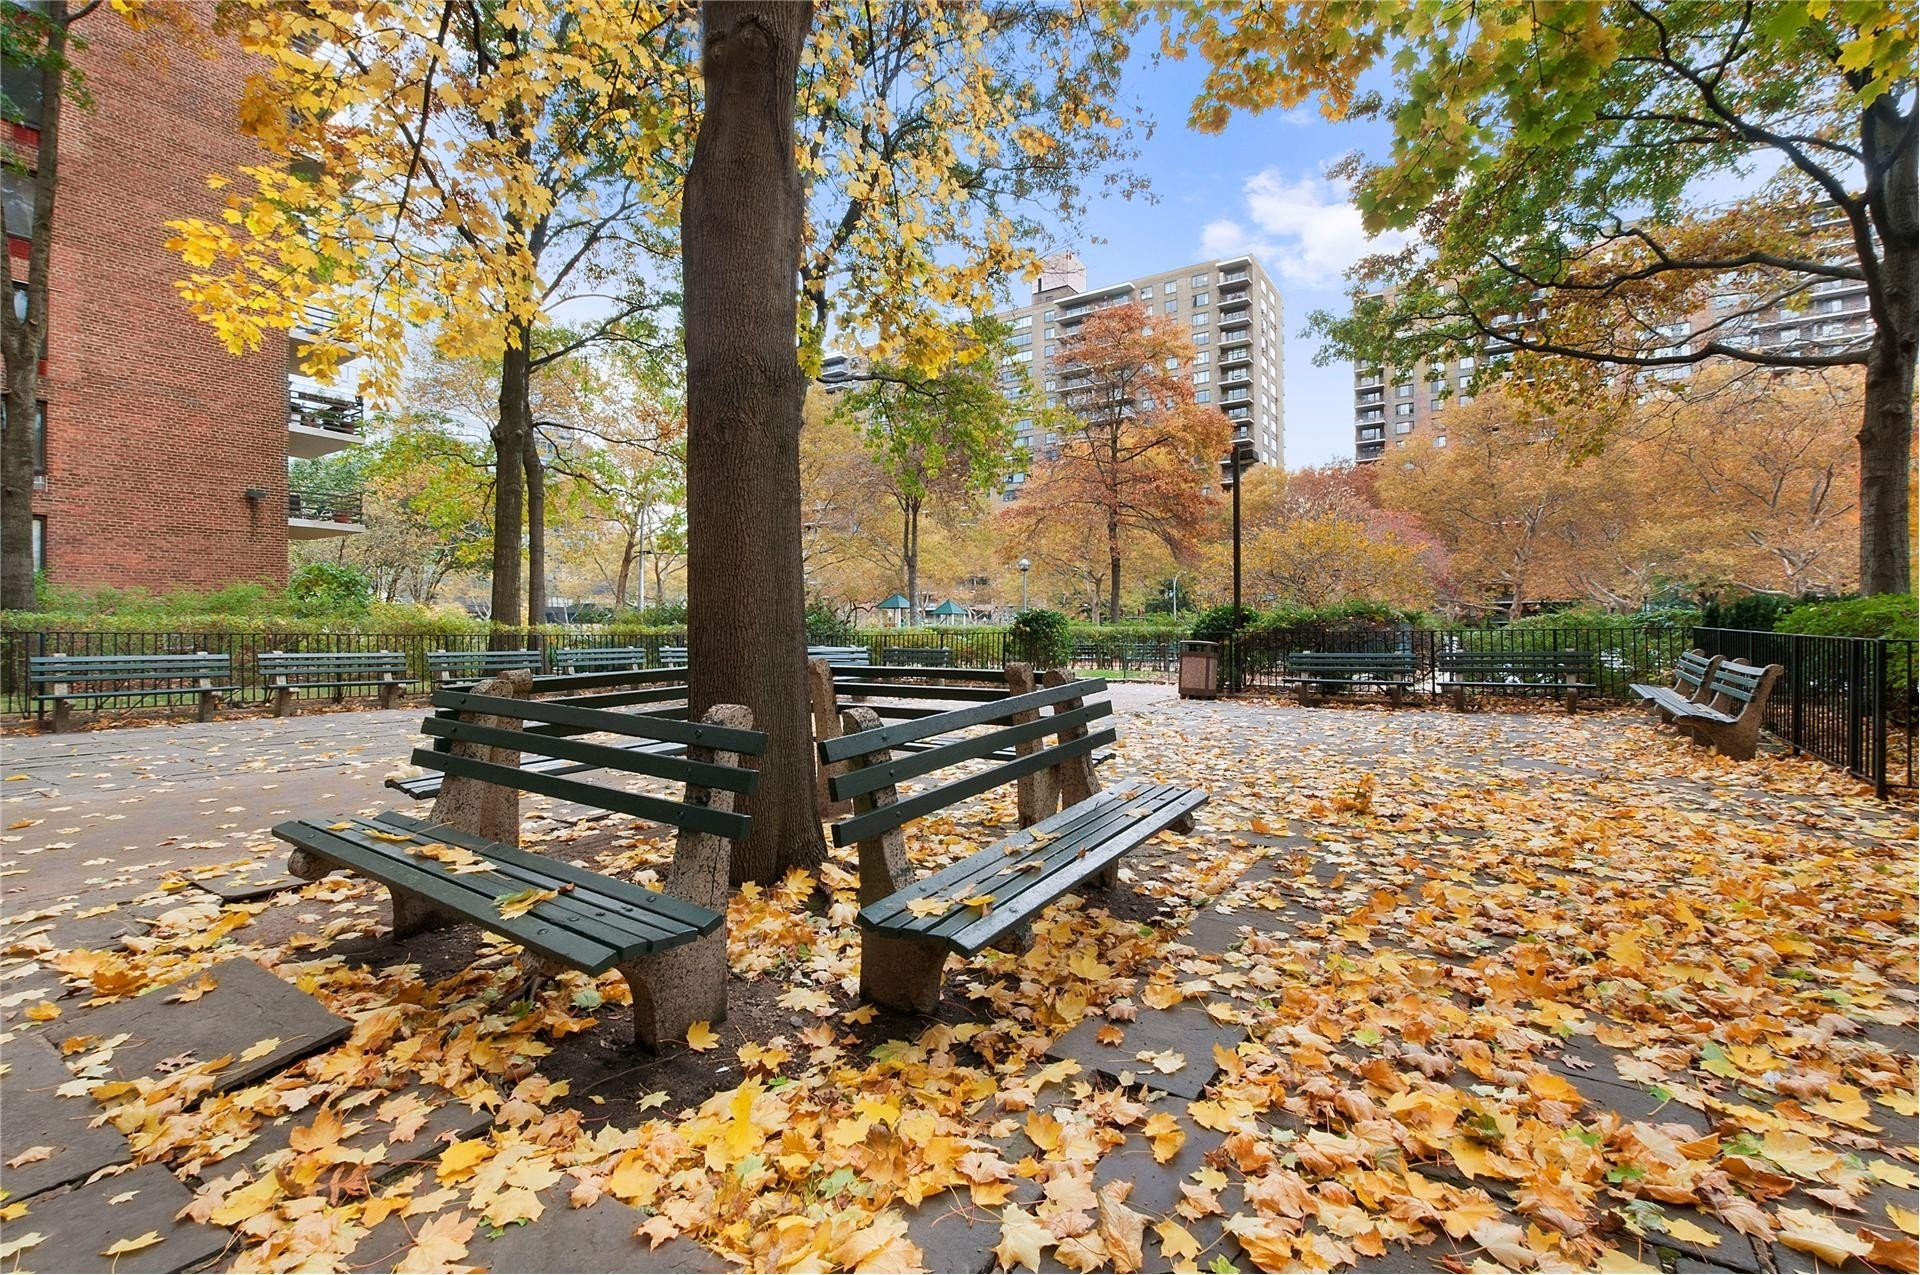 21. Condominiums for Sale at Vaux, The (Park Wes, 372 CENTRAL PARK W, 5BC Manhattan Valley, New York, NY 10025